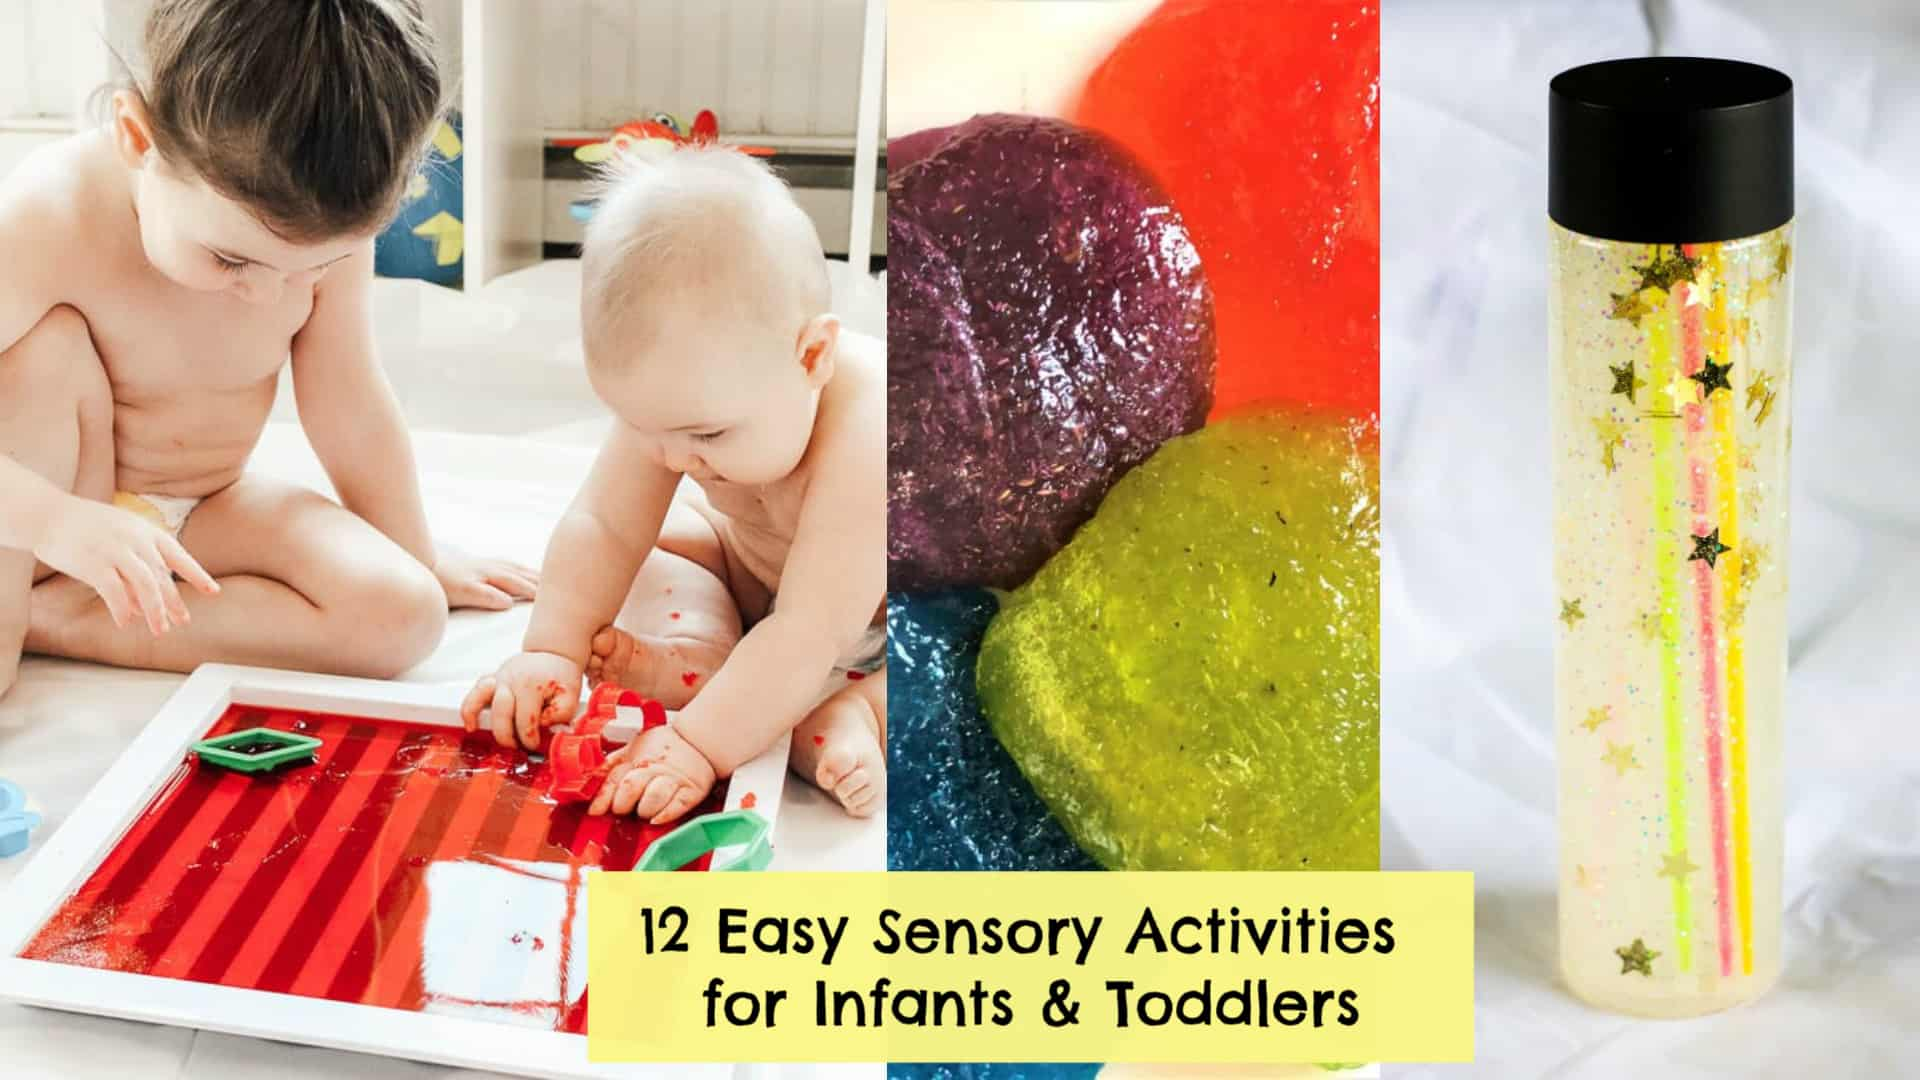 12 Fun & Easy Sensory Activities for Infants & Toddlers